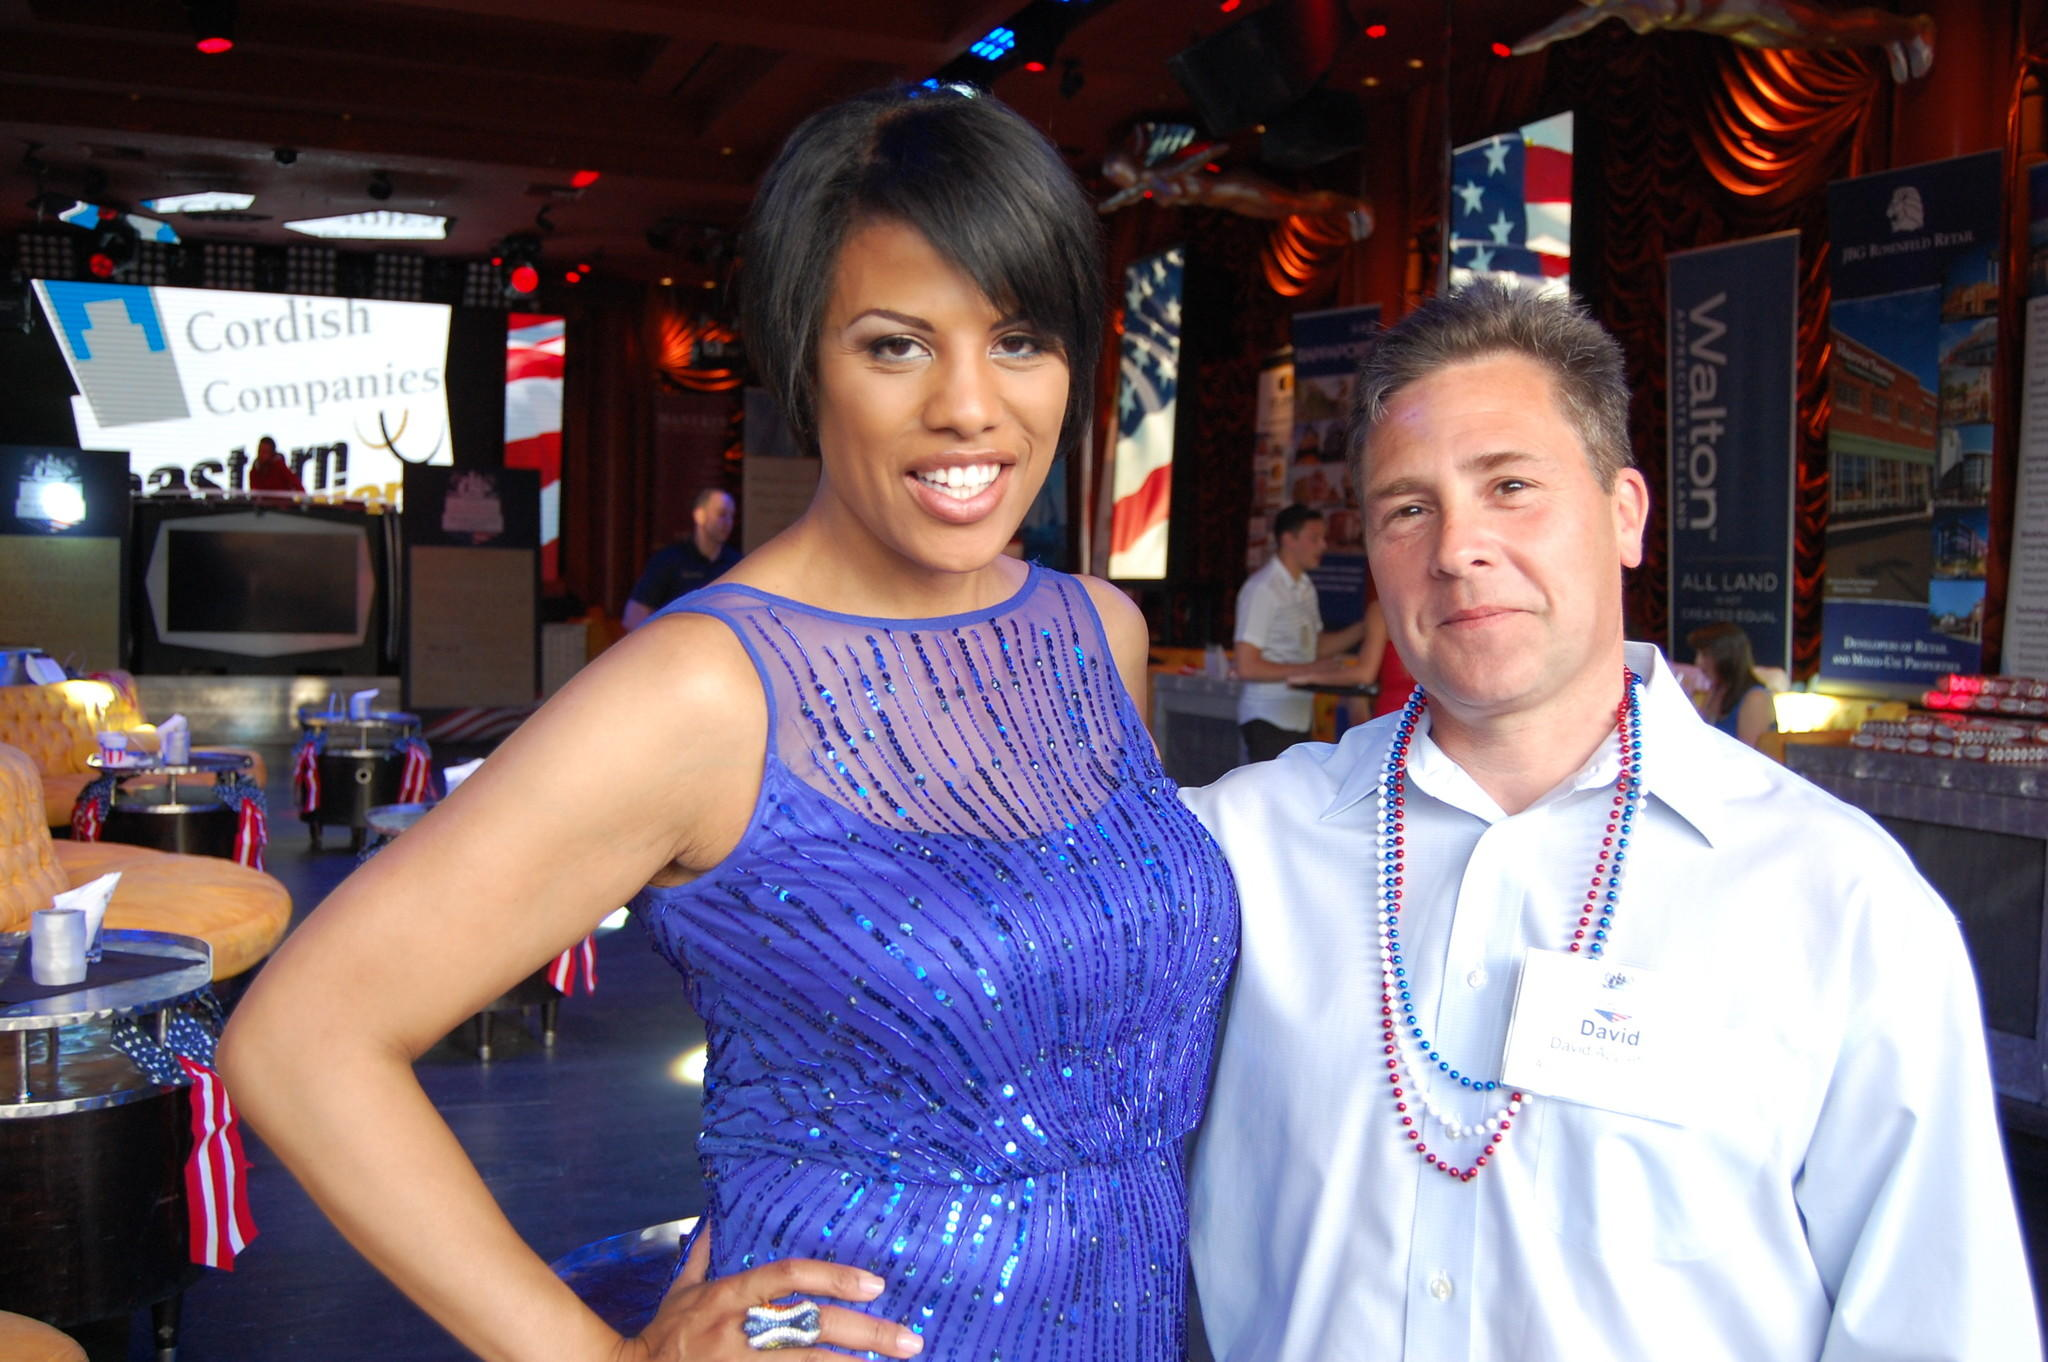 Baltimore Mayor Stephanie Rawlings-Blake and David Applefeld of Adelberg, Rudow, Dorf & Hendler attend the conference in Las Vegas.